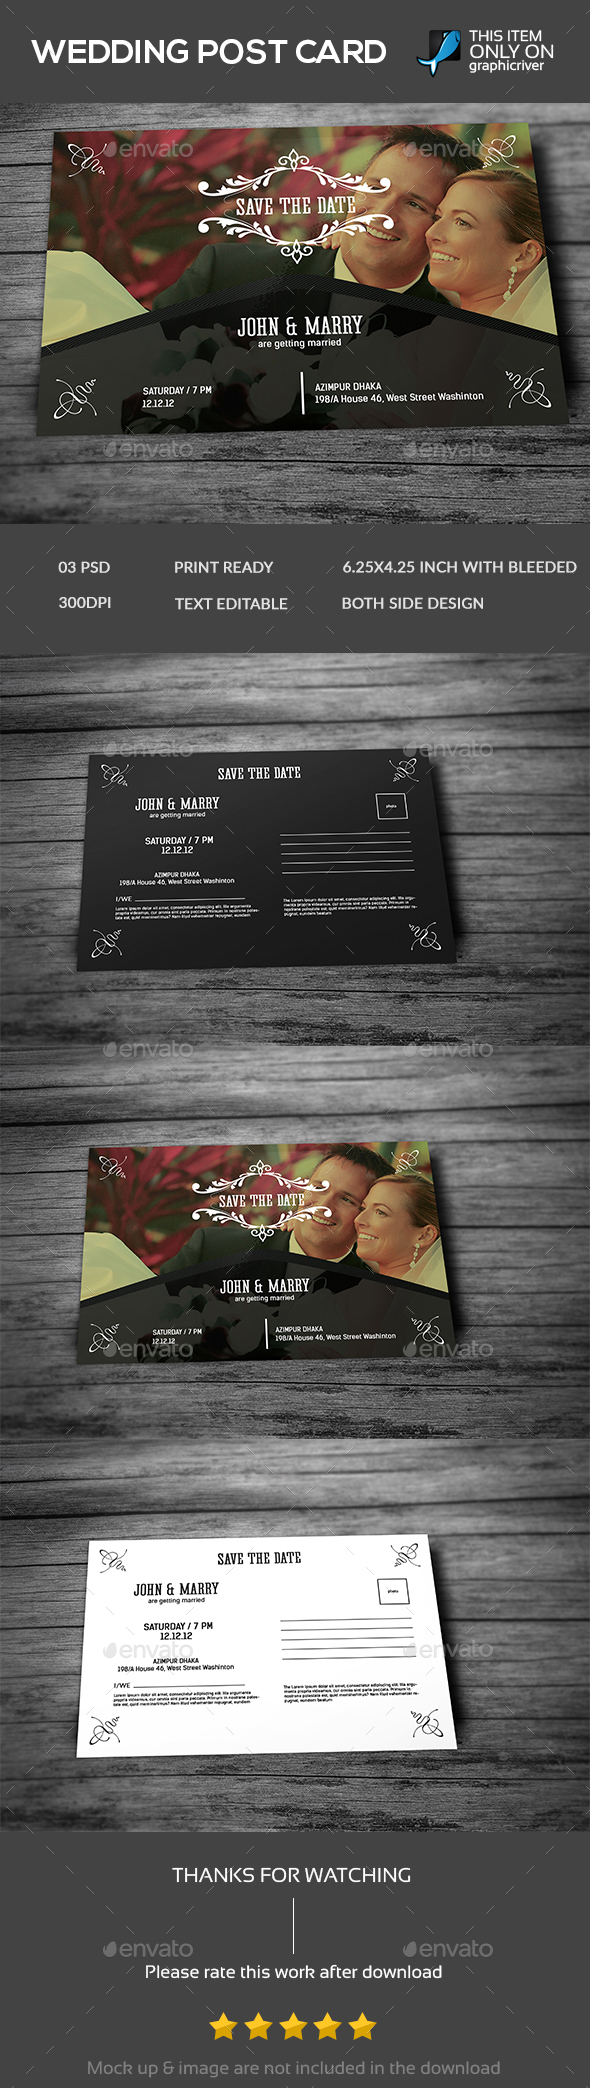 Wedding Post Card Template - Weddings Cards & Invites